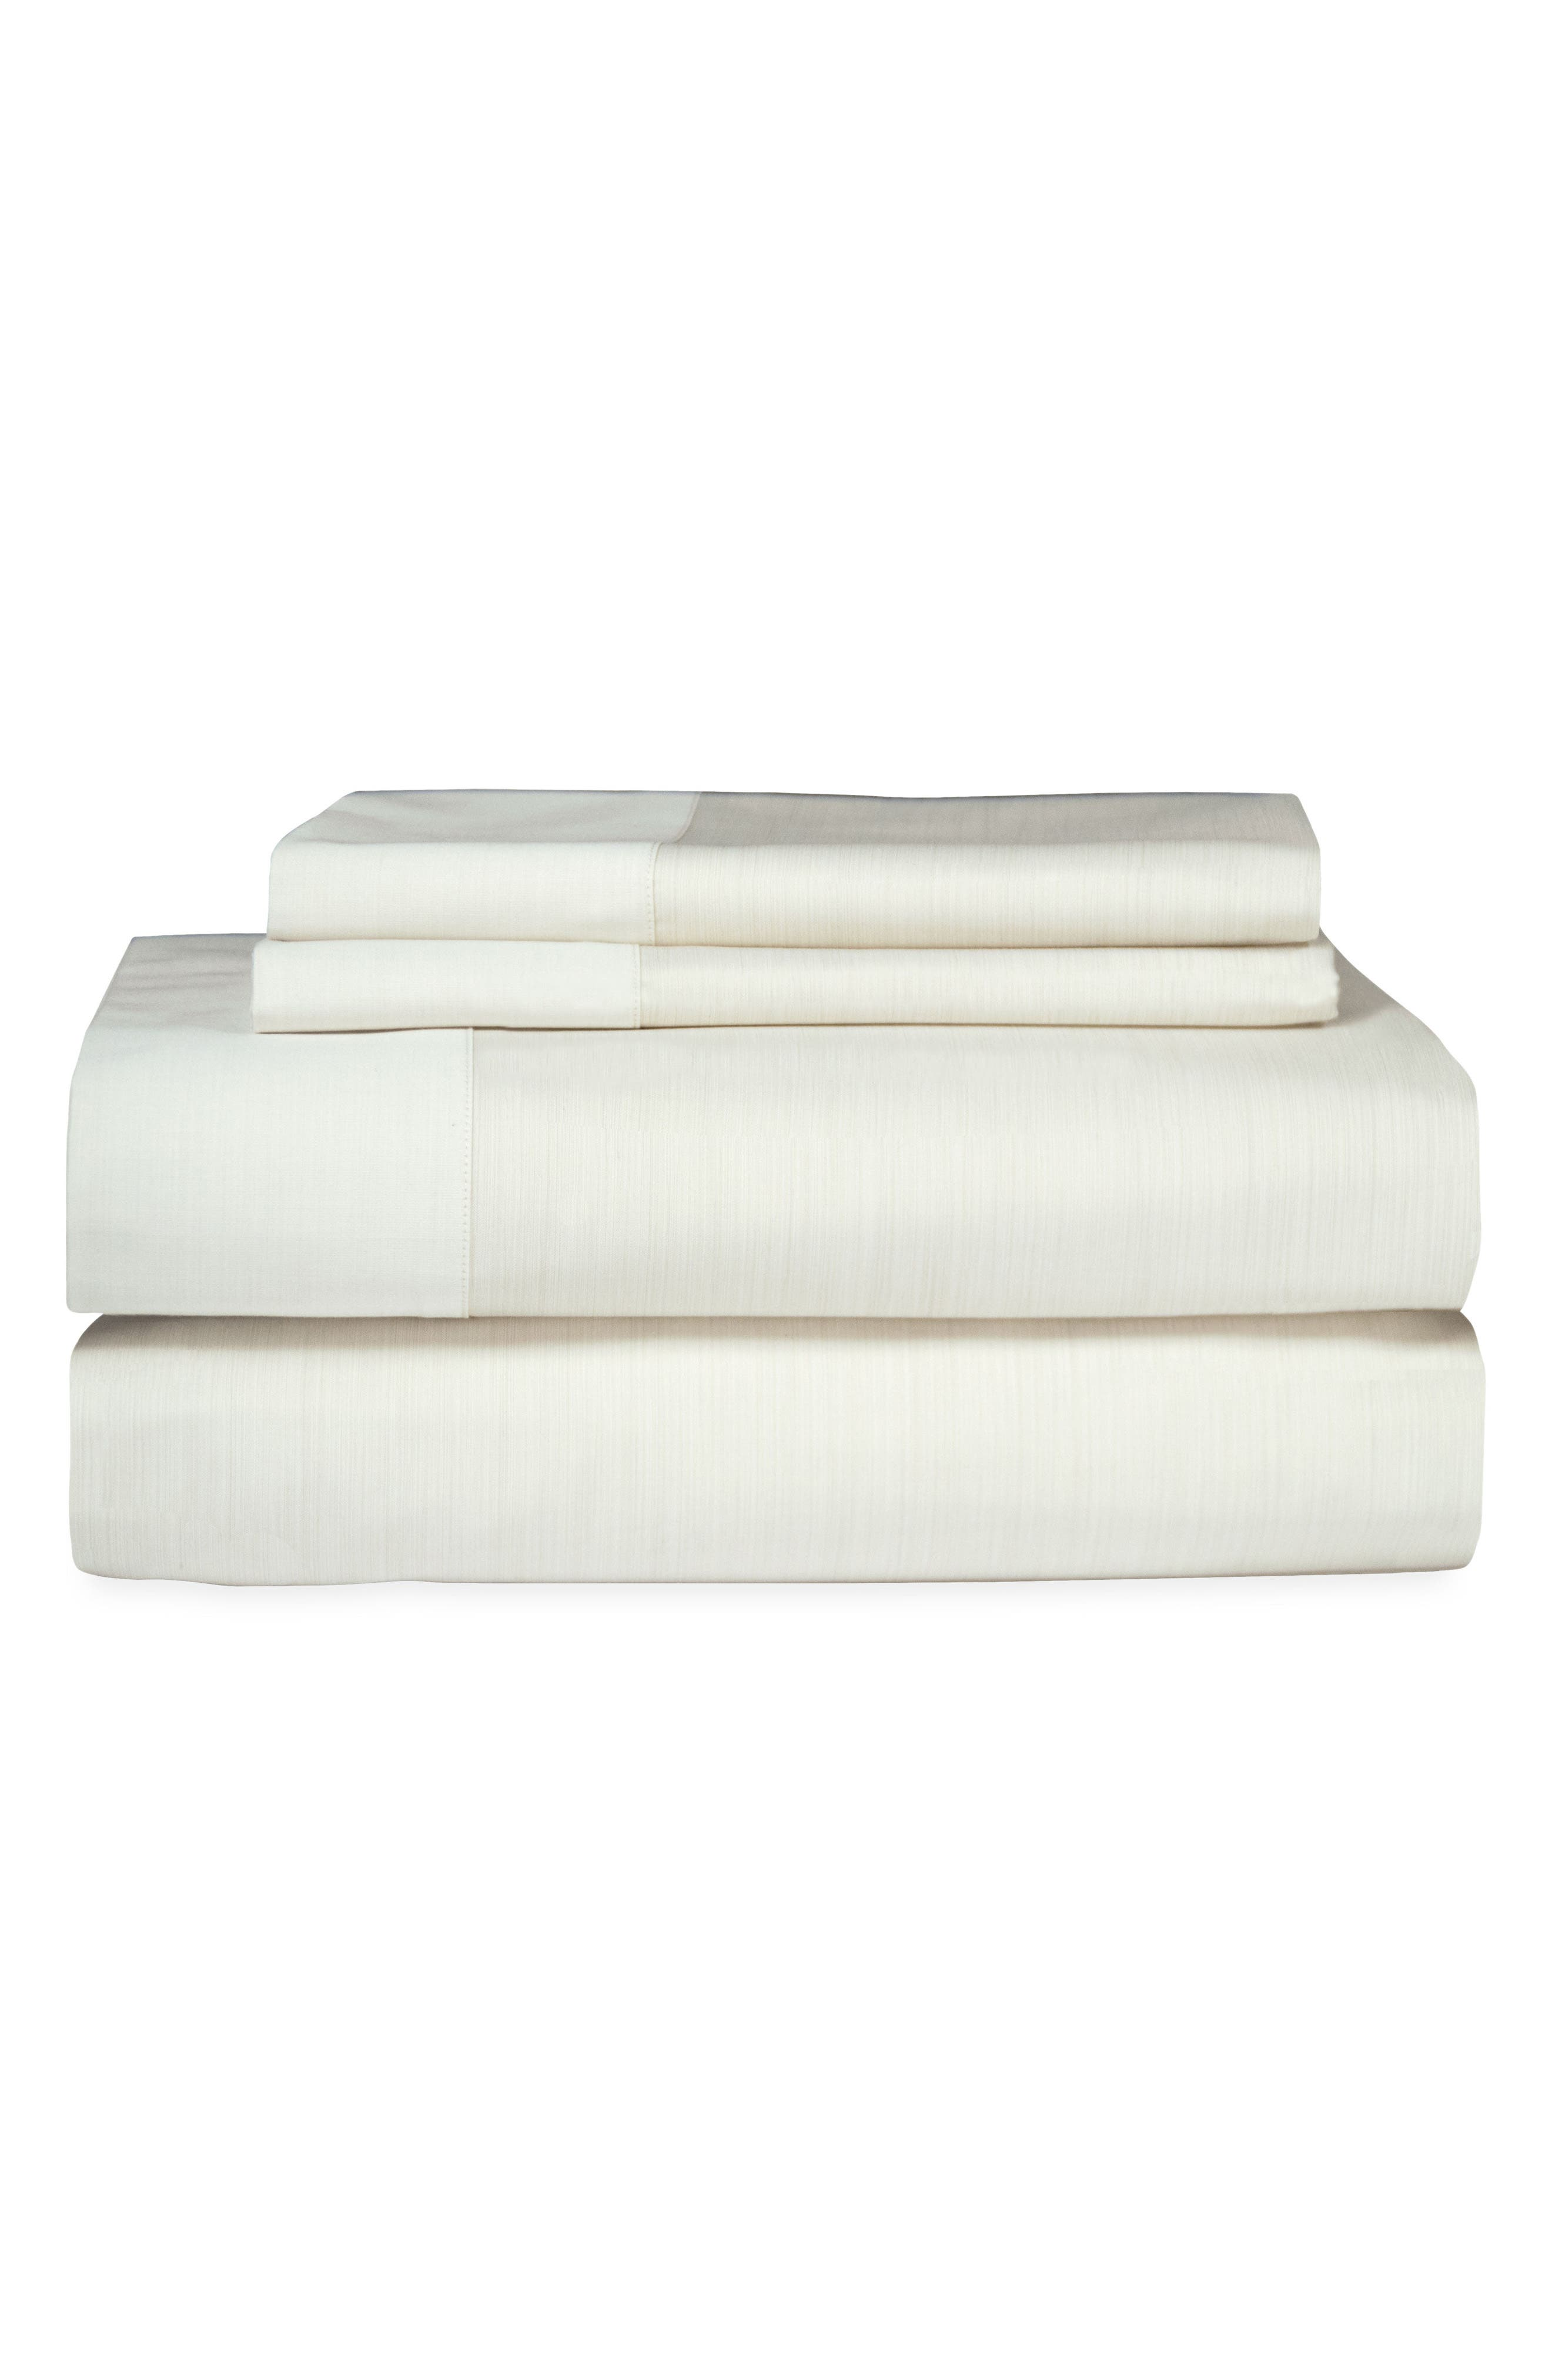 Striated Band 400 Thread Count Fitted Sheet,                             Main thumbnail 1, color,                             Ivory